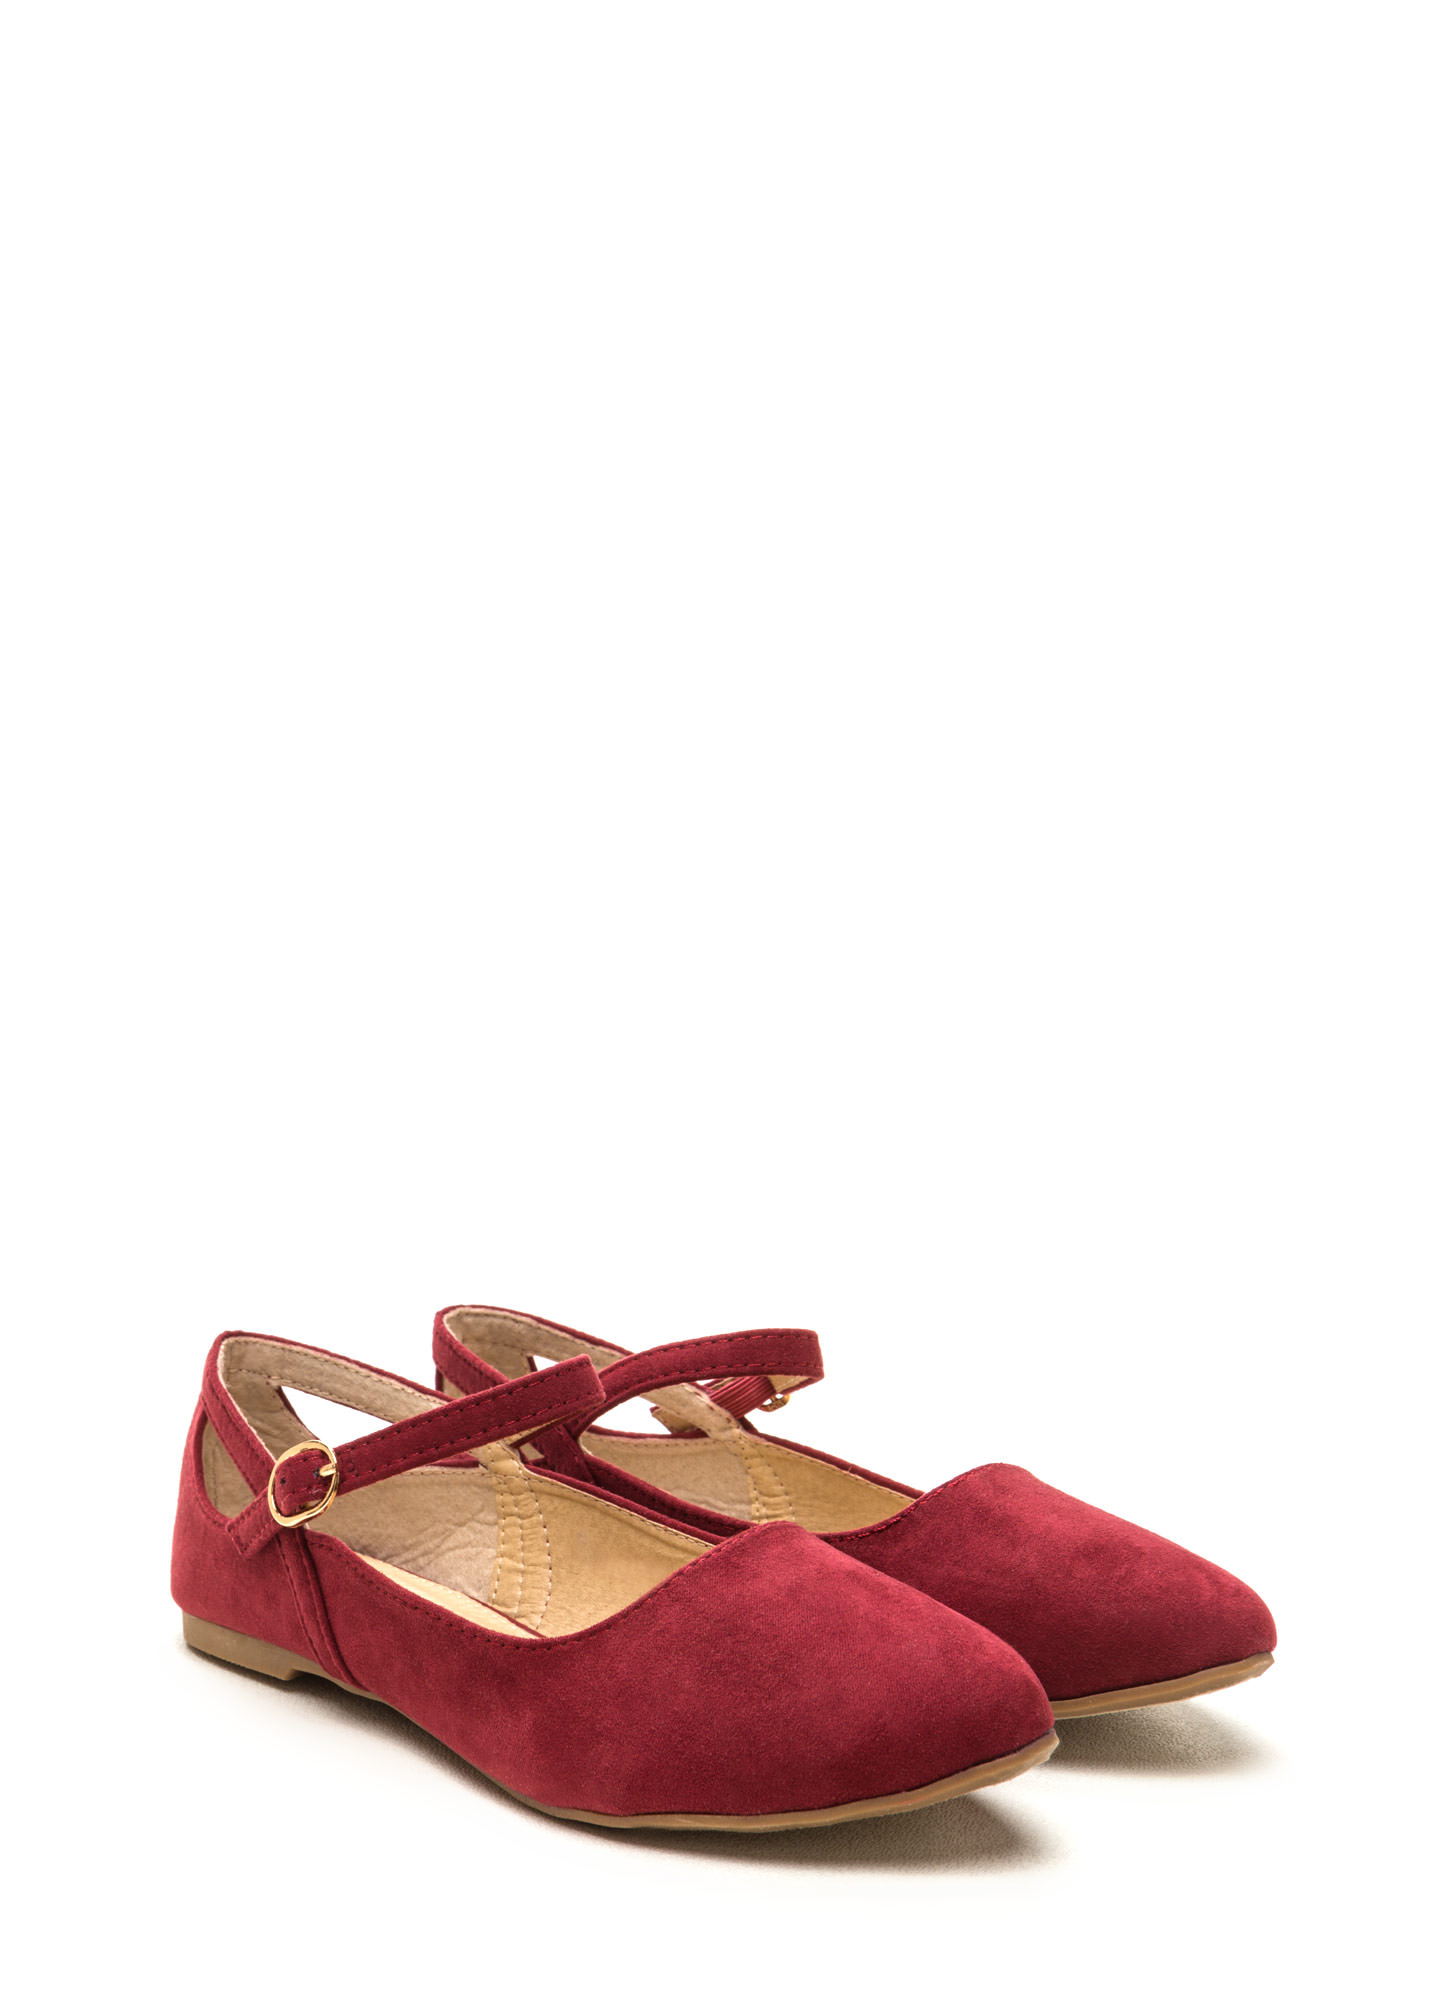 Chic Footnote Pointy Cut-Out Flats WINE